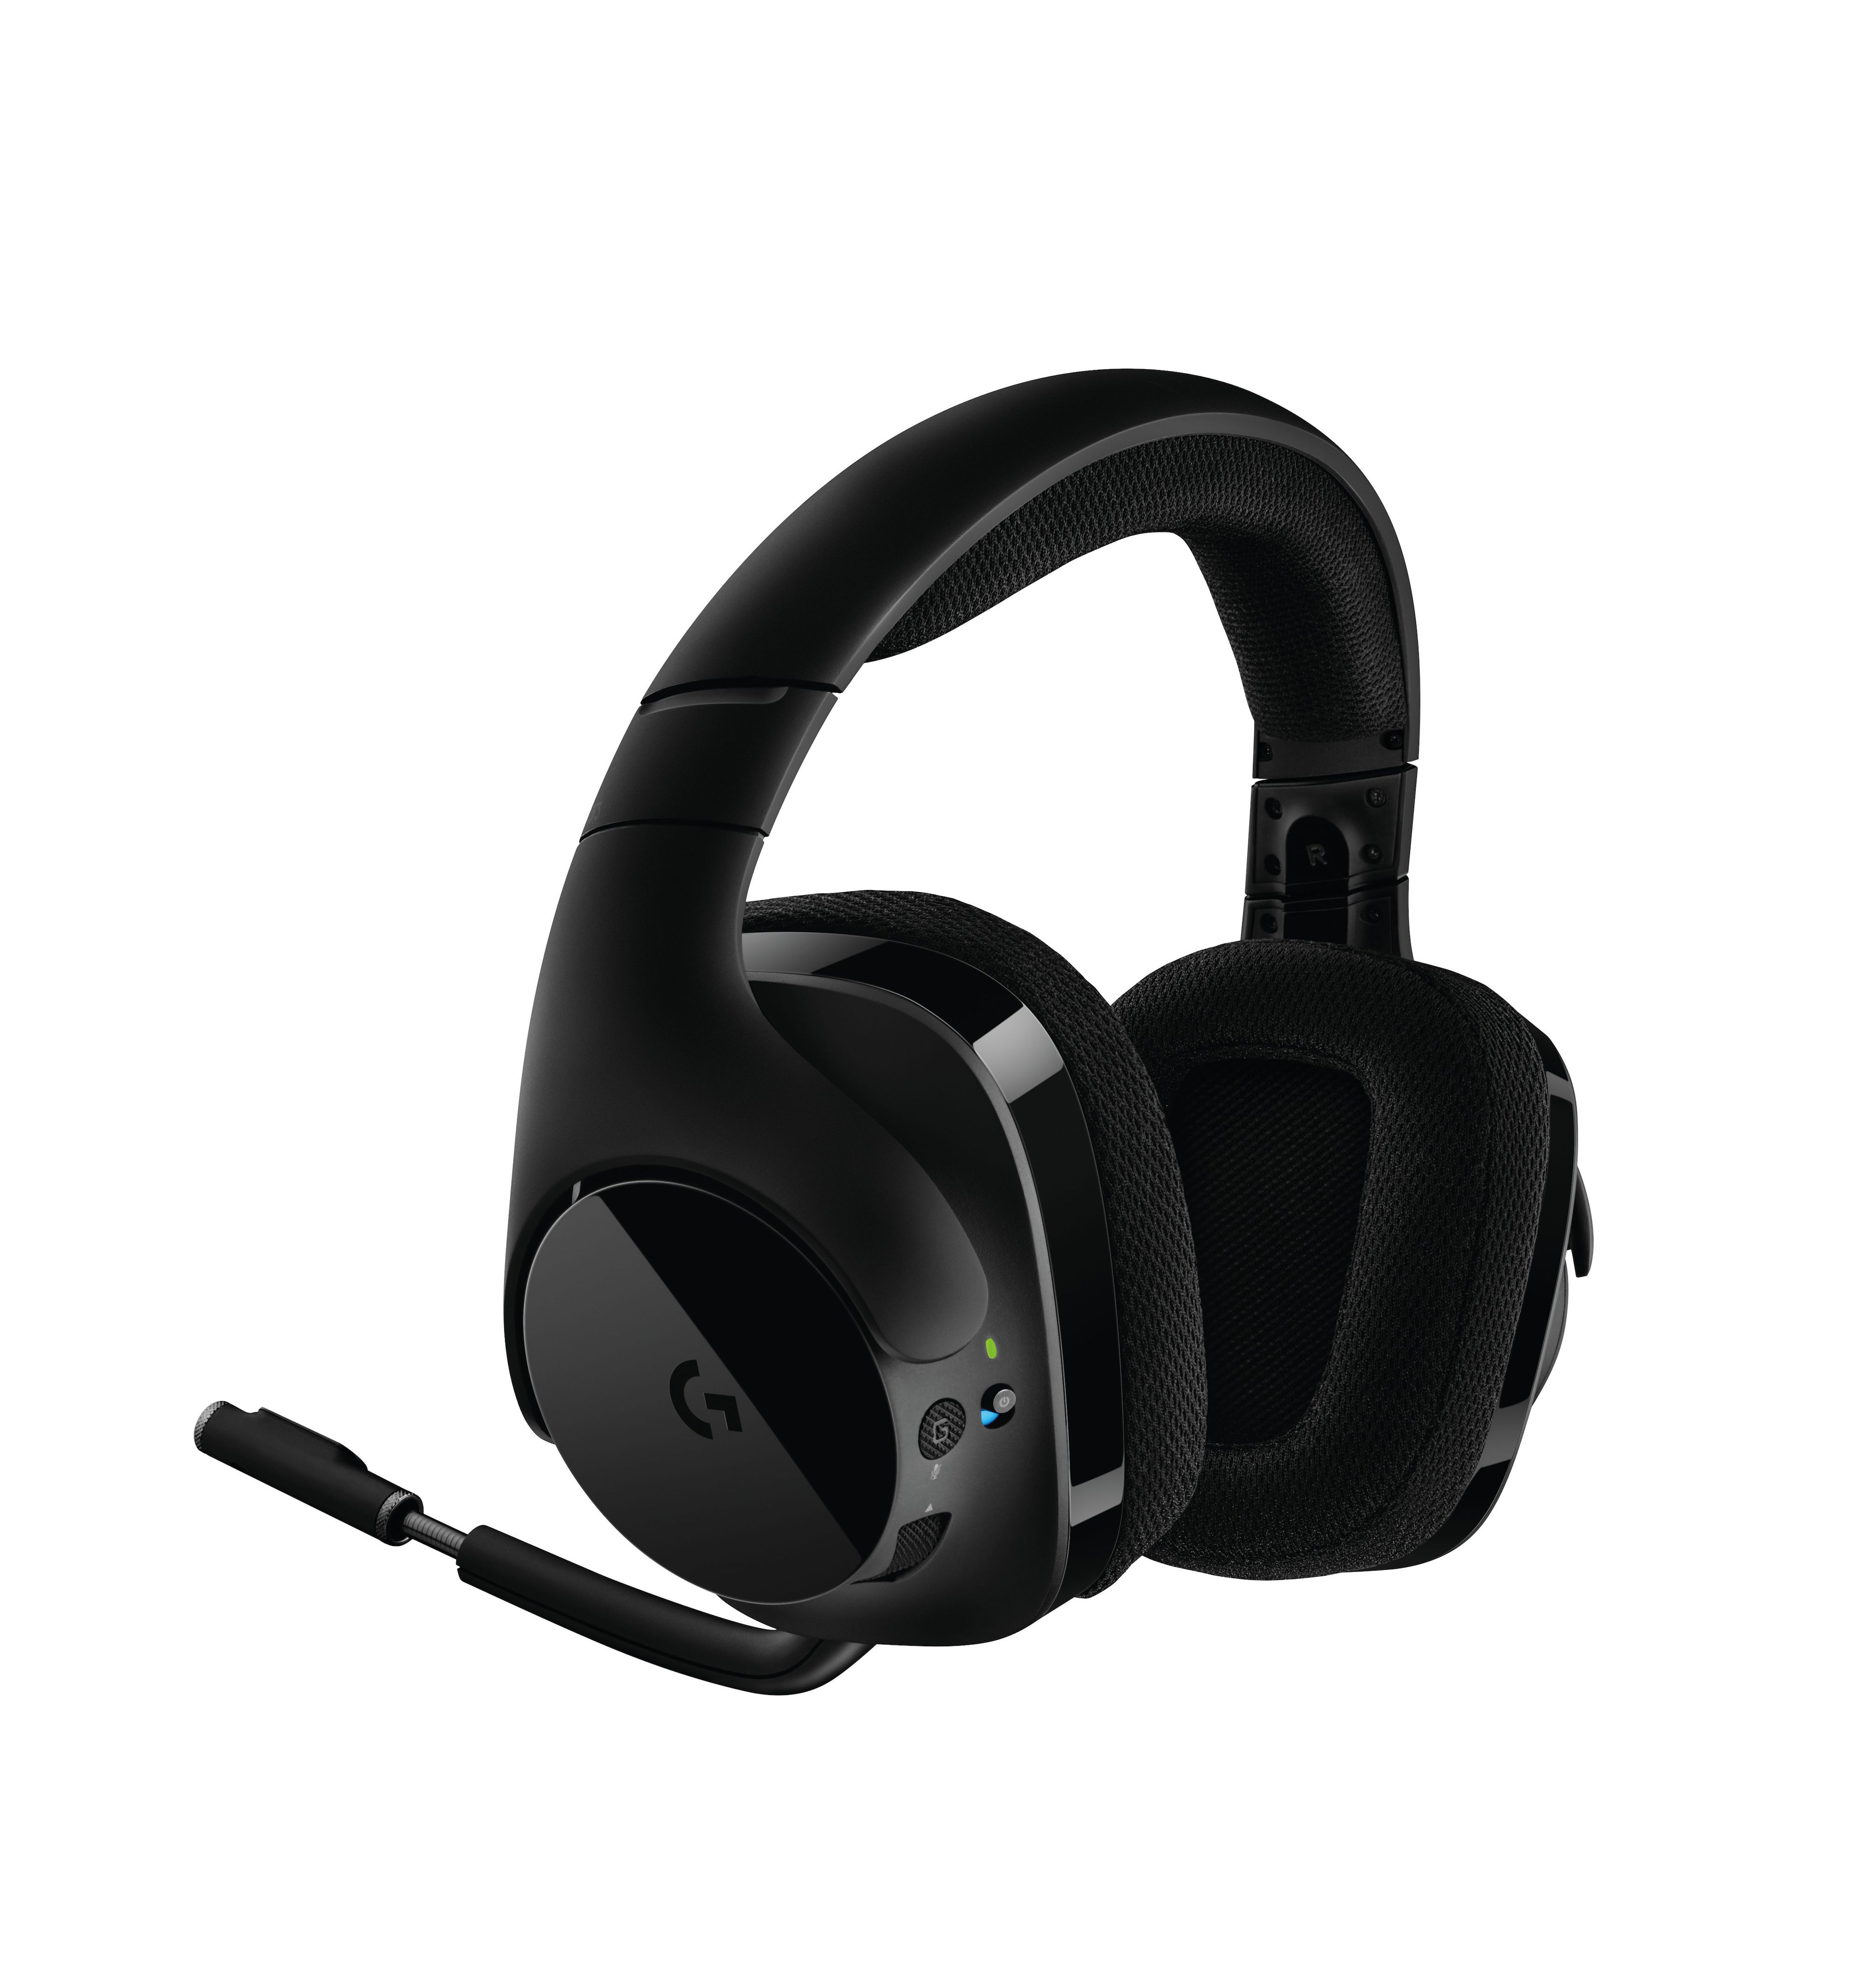 logitech g533 wireless gaming headset vorgestellt. Black Bedroom Furniture Sets. Home Design Ideas